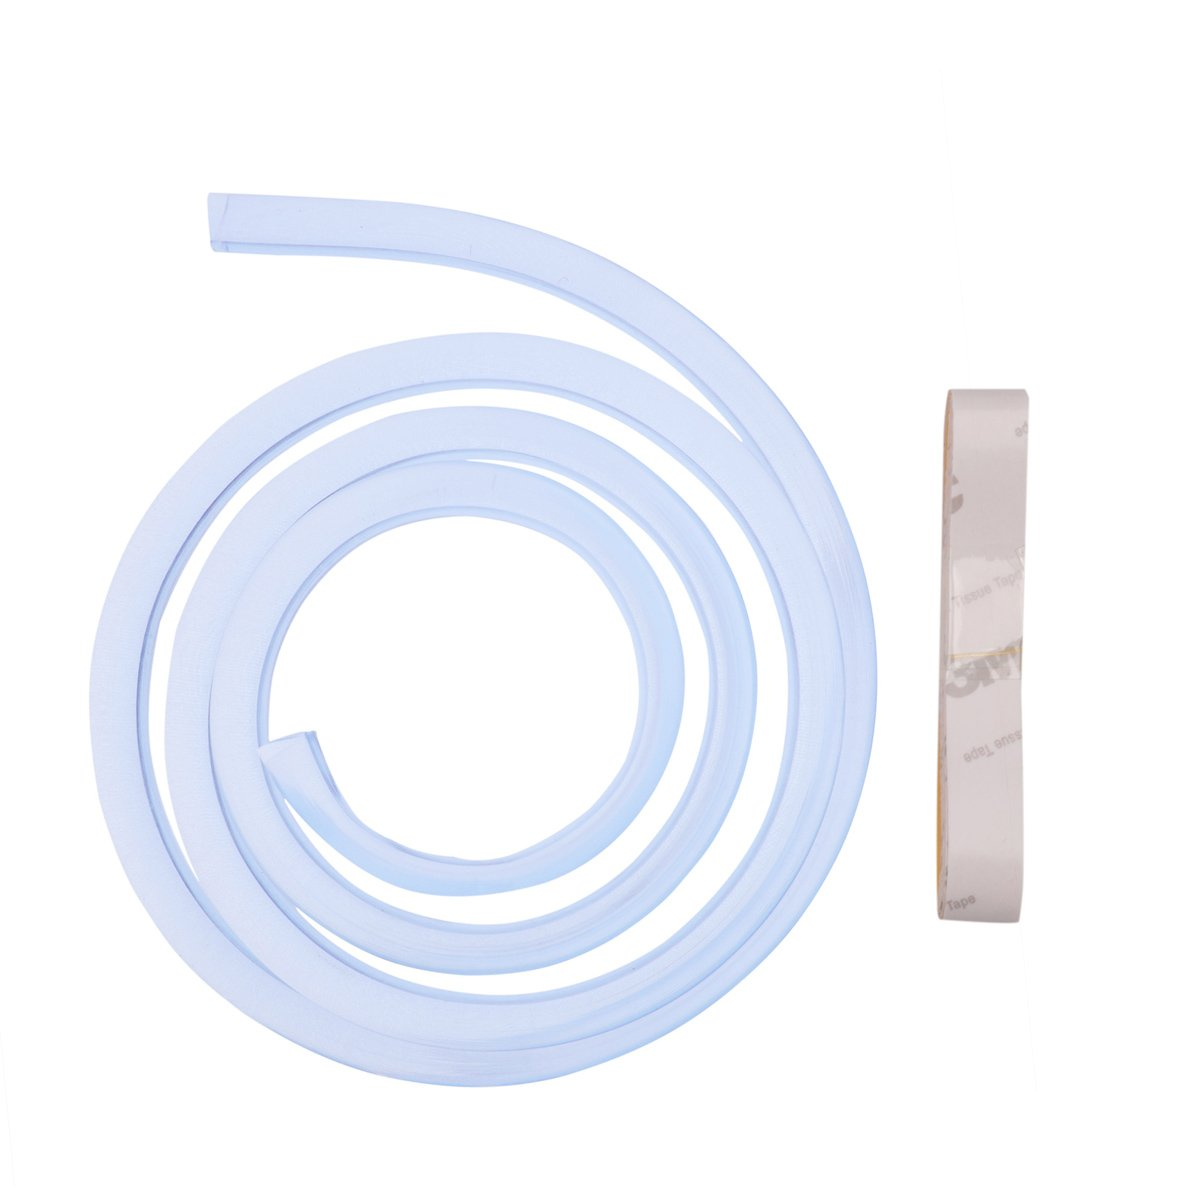 YiZYiF 1M/39 Inches Anti-Collision Corner Guard Safety Baby Proofing Edge Guards Toddlers Babies Home Furniture Sharp Corner Clear Protective Bumpers